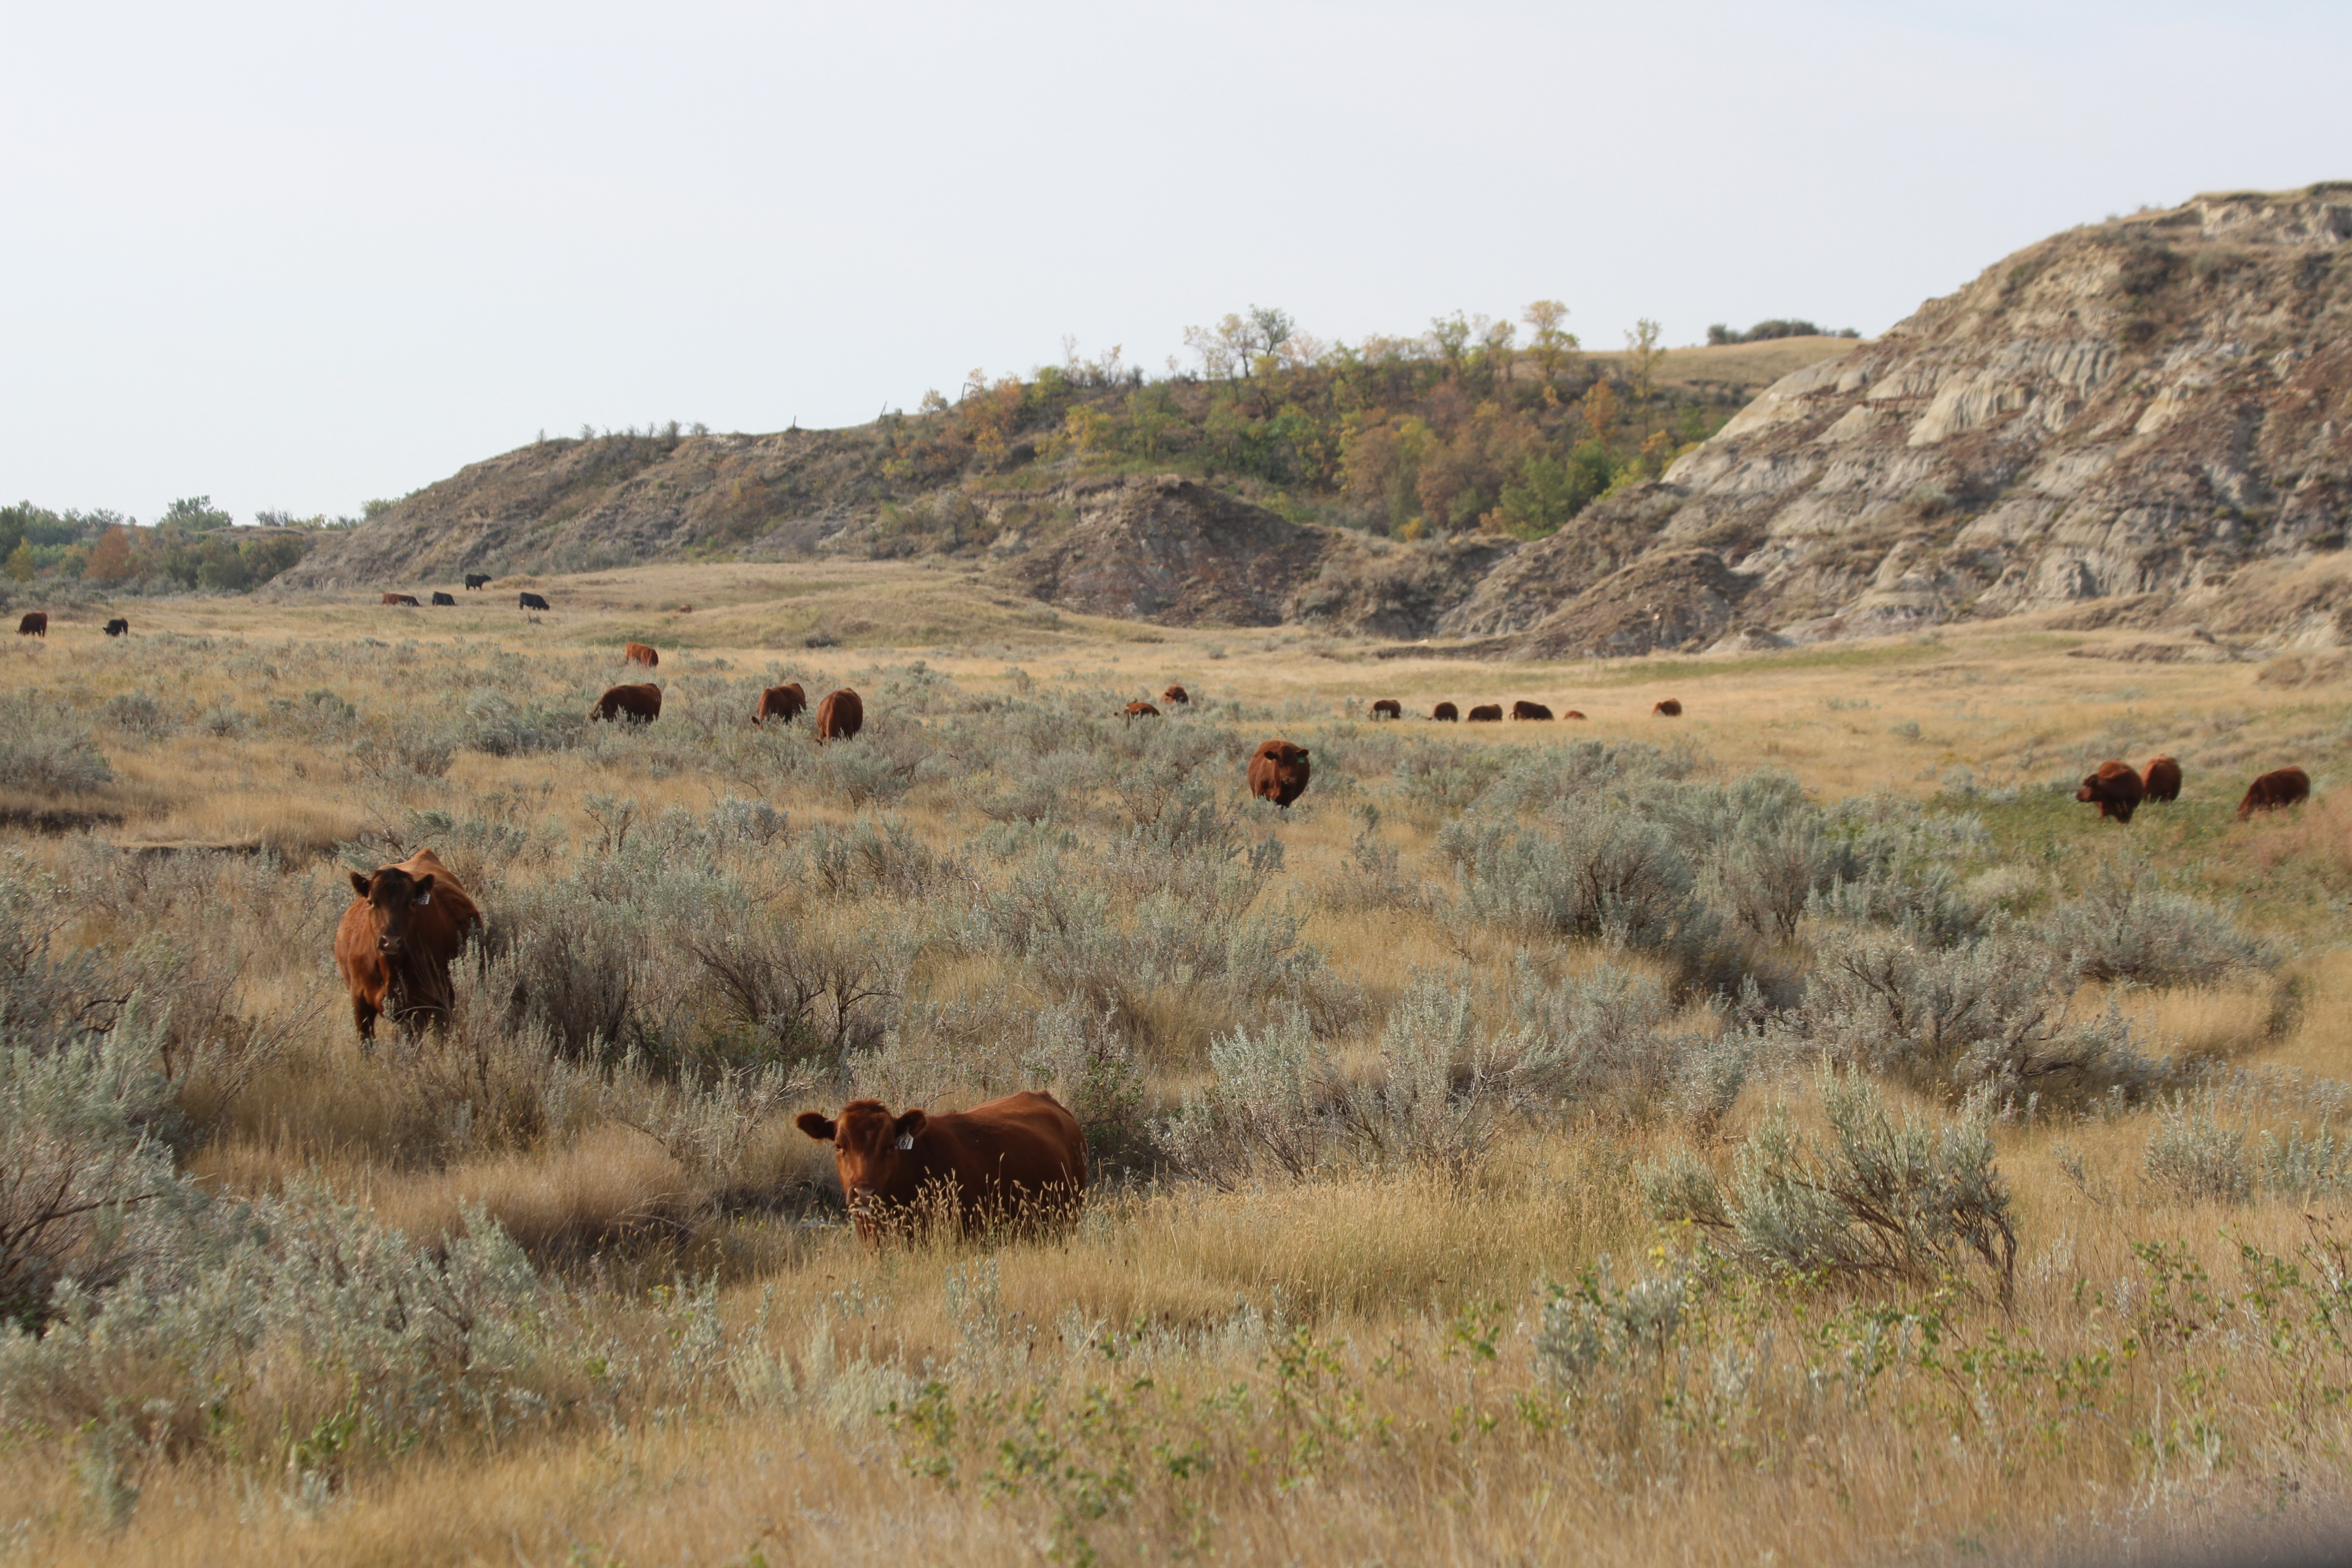 Curious Red Angus Cows